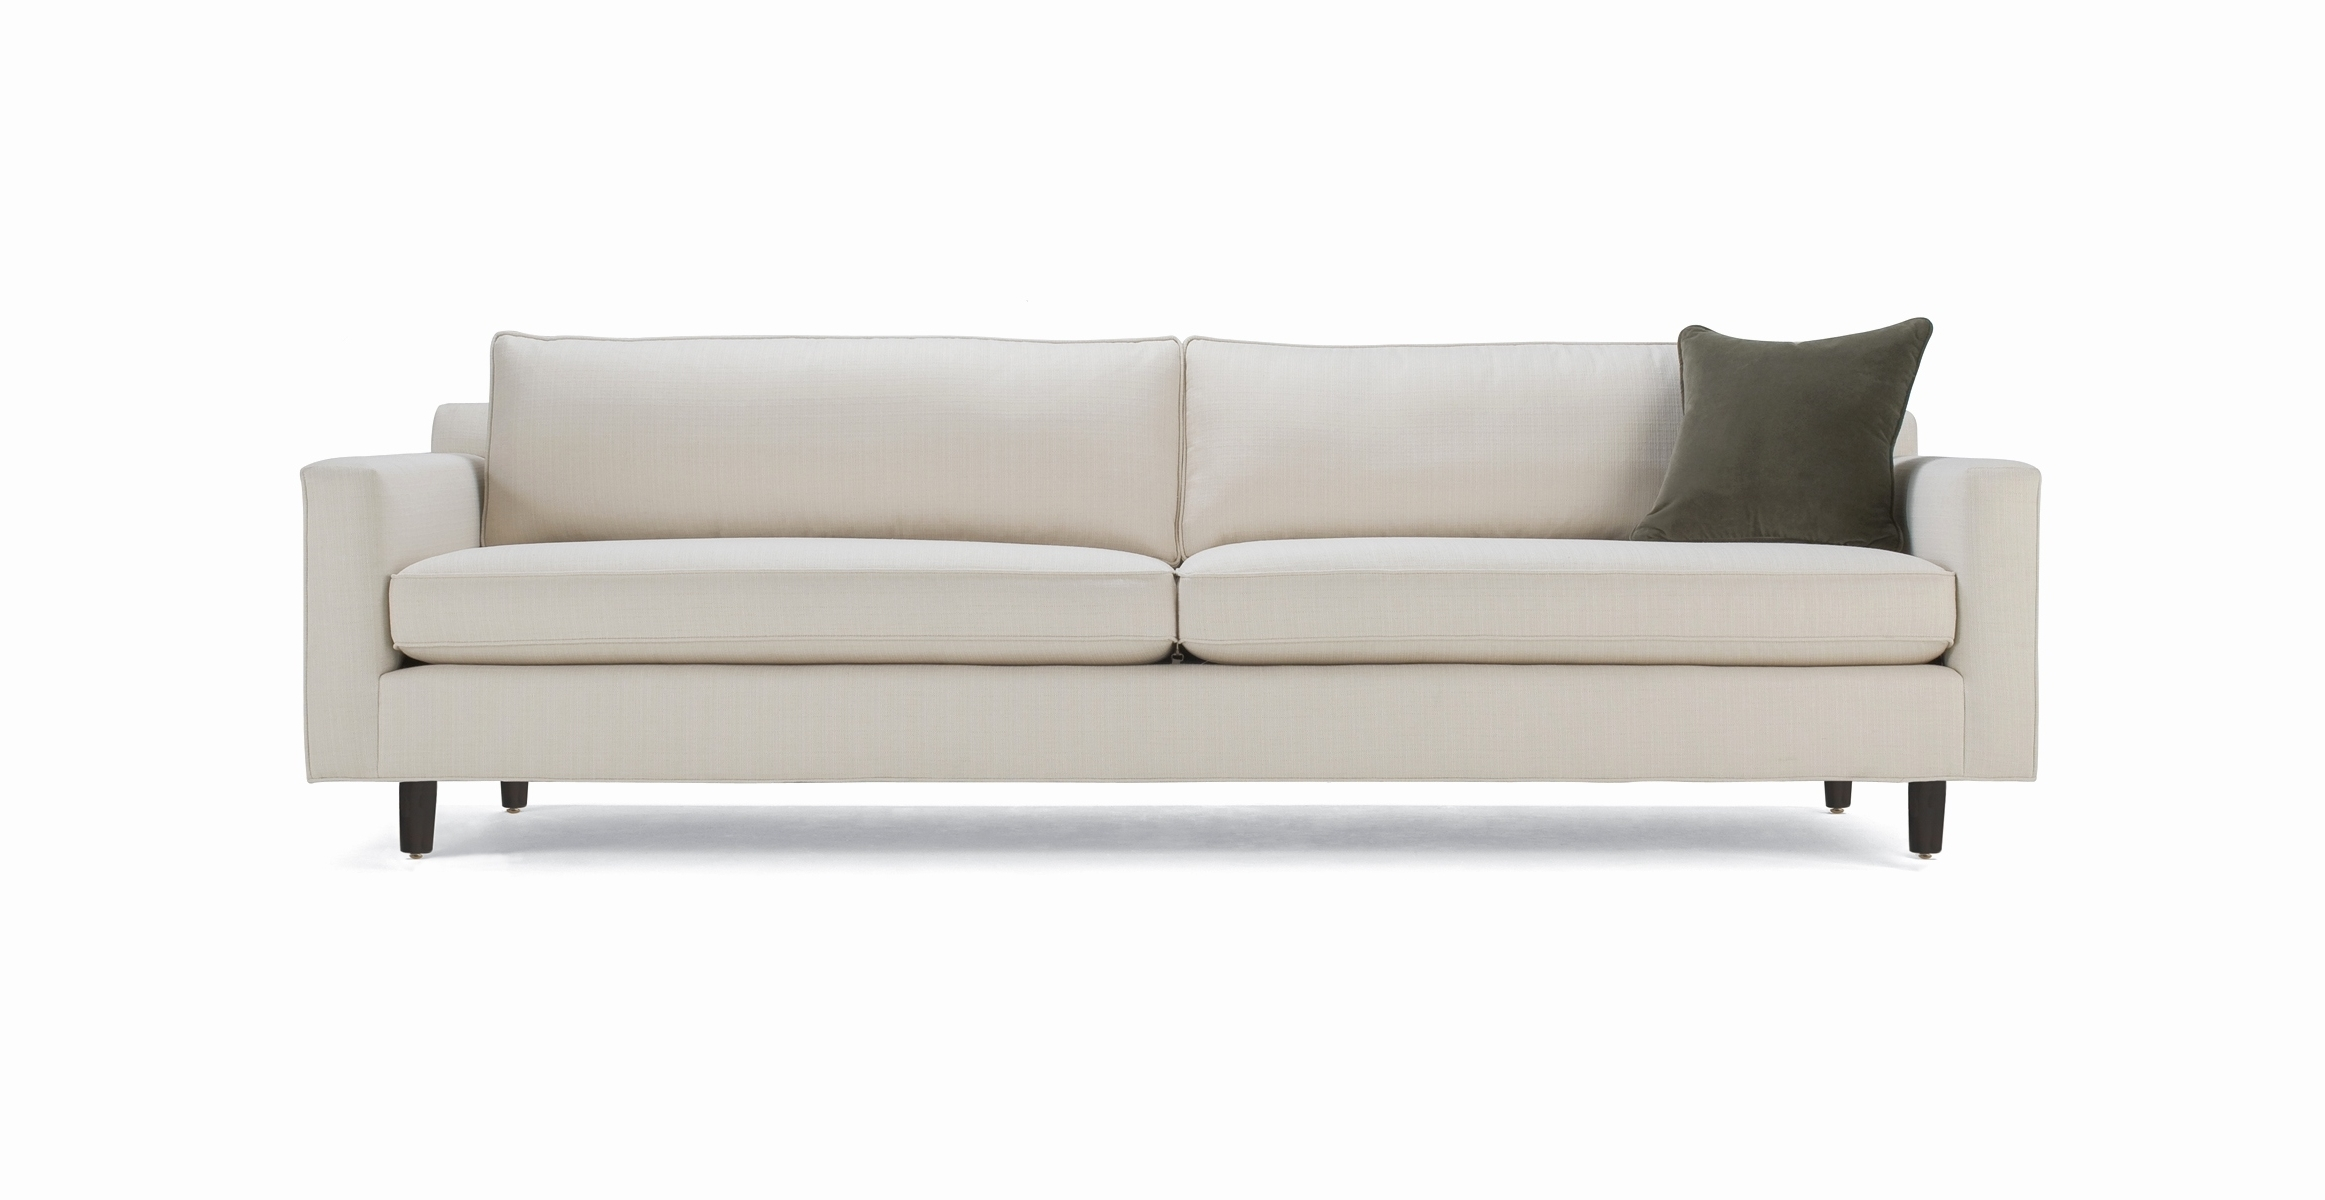 Mitchell Gold Sofas For Well Known New Mitchell Gold Sofa 2018 – Couches Ideas (View 10 of 20)